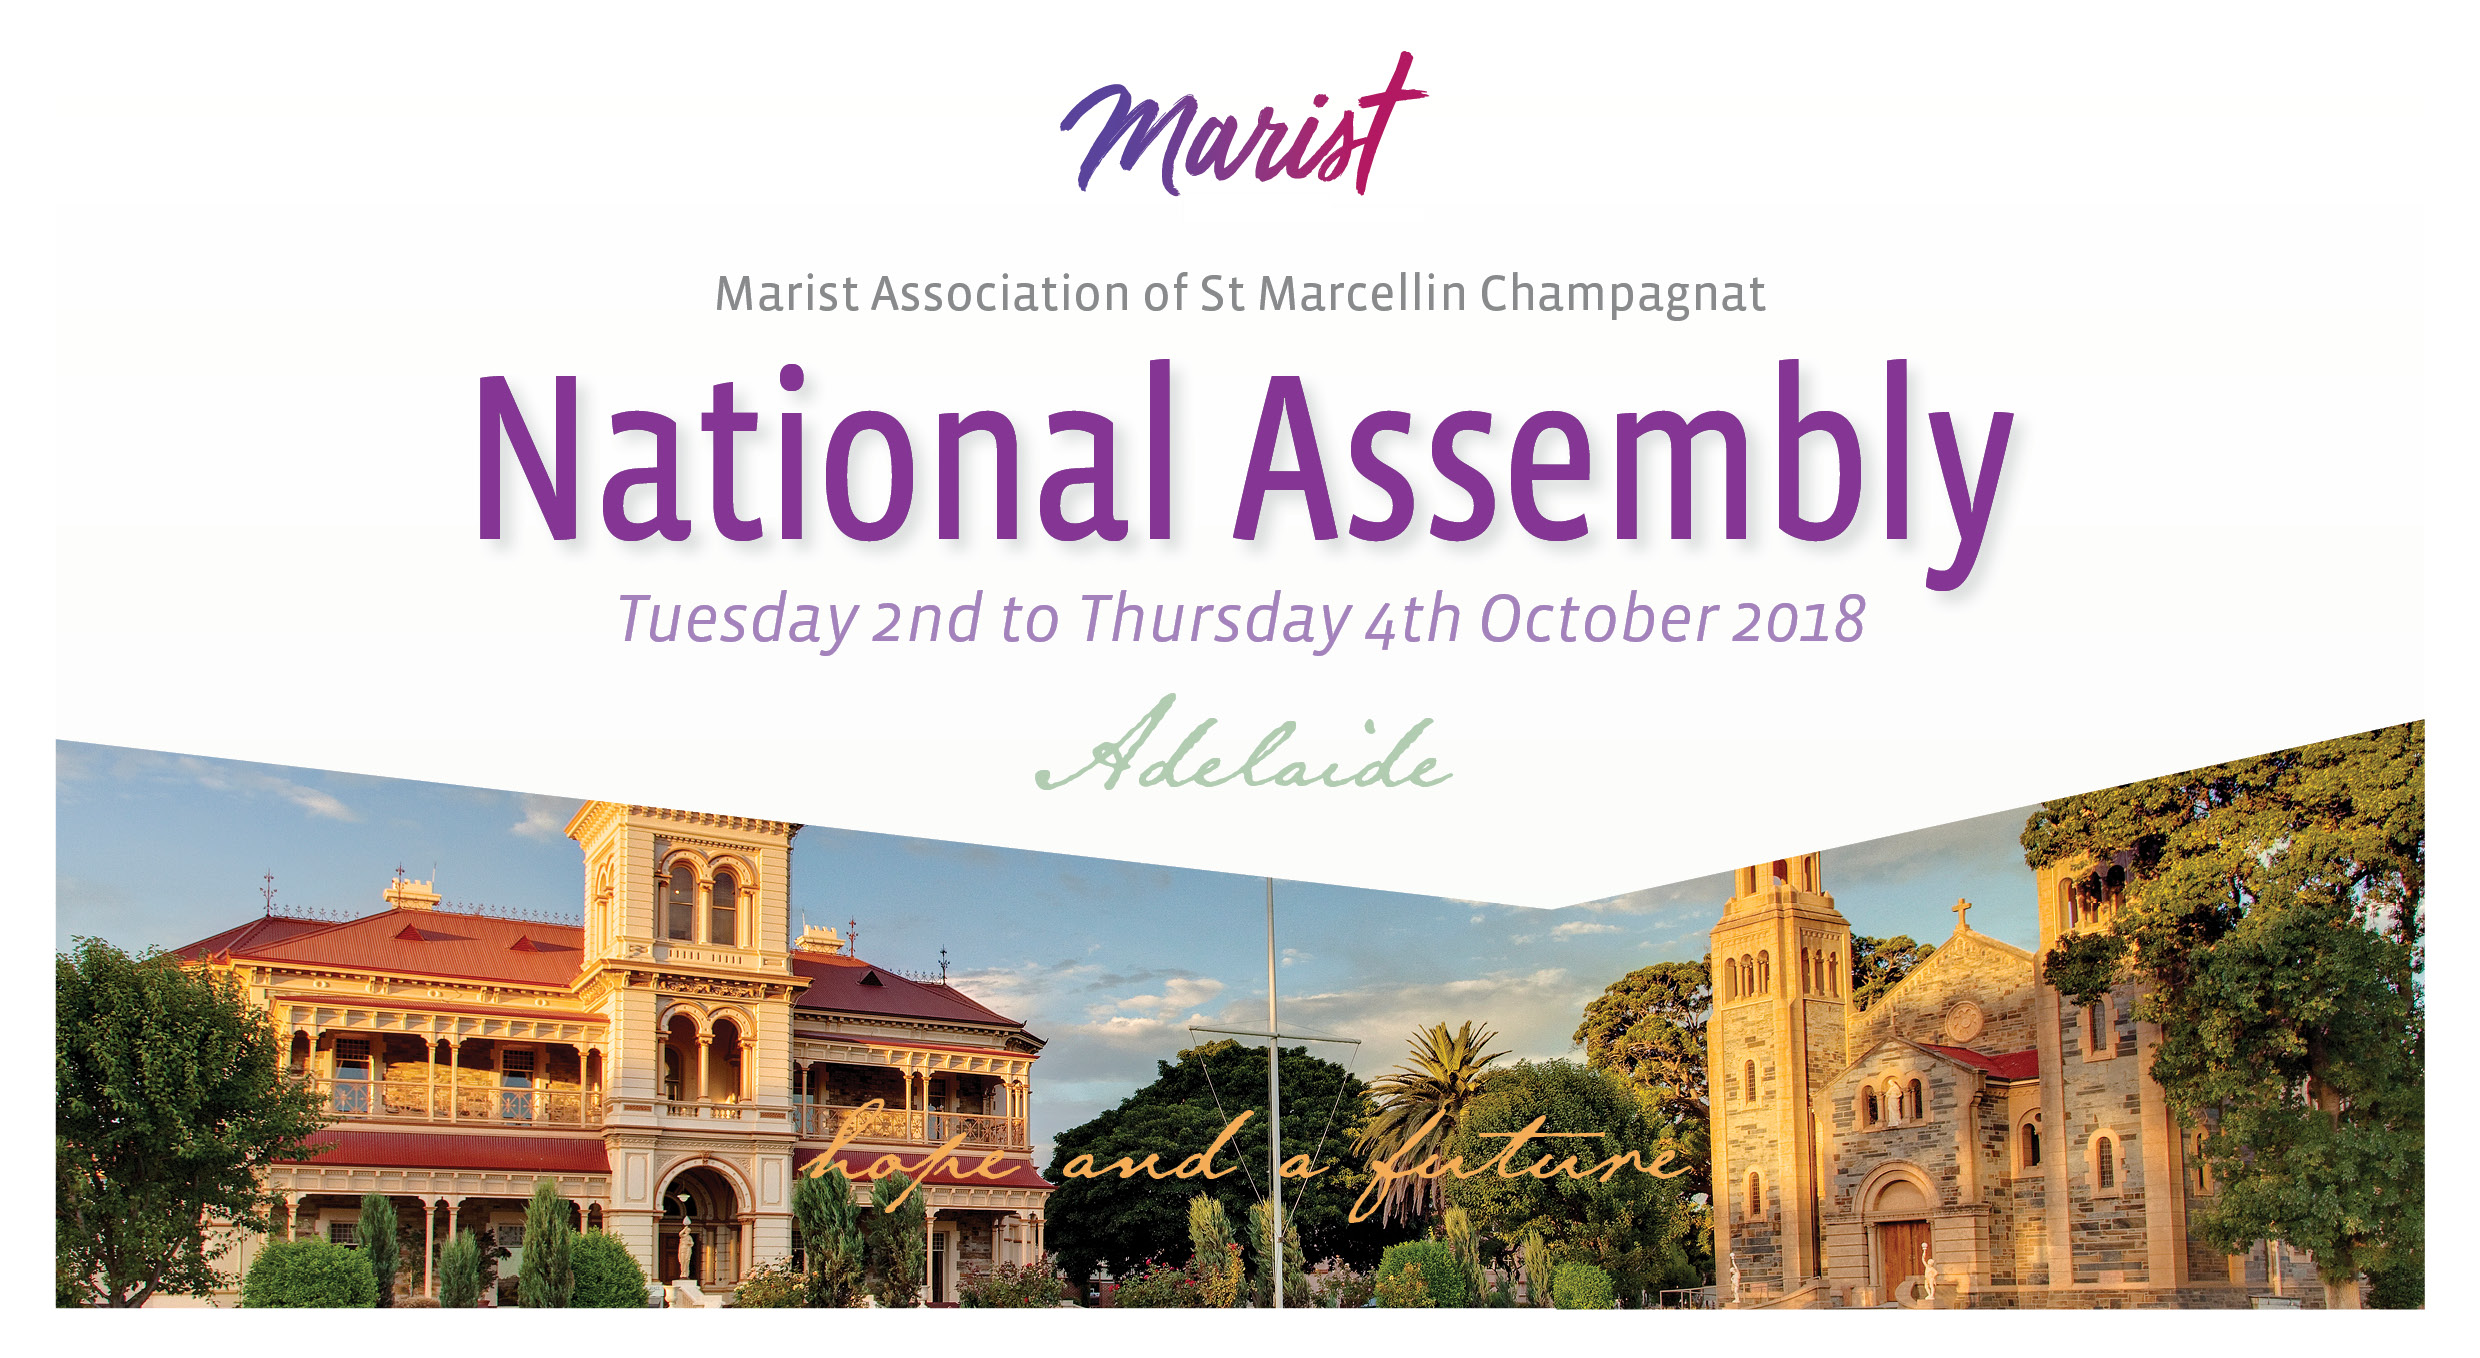 Marist Association National Assembly 2018